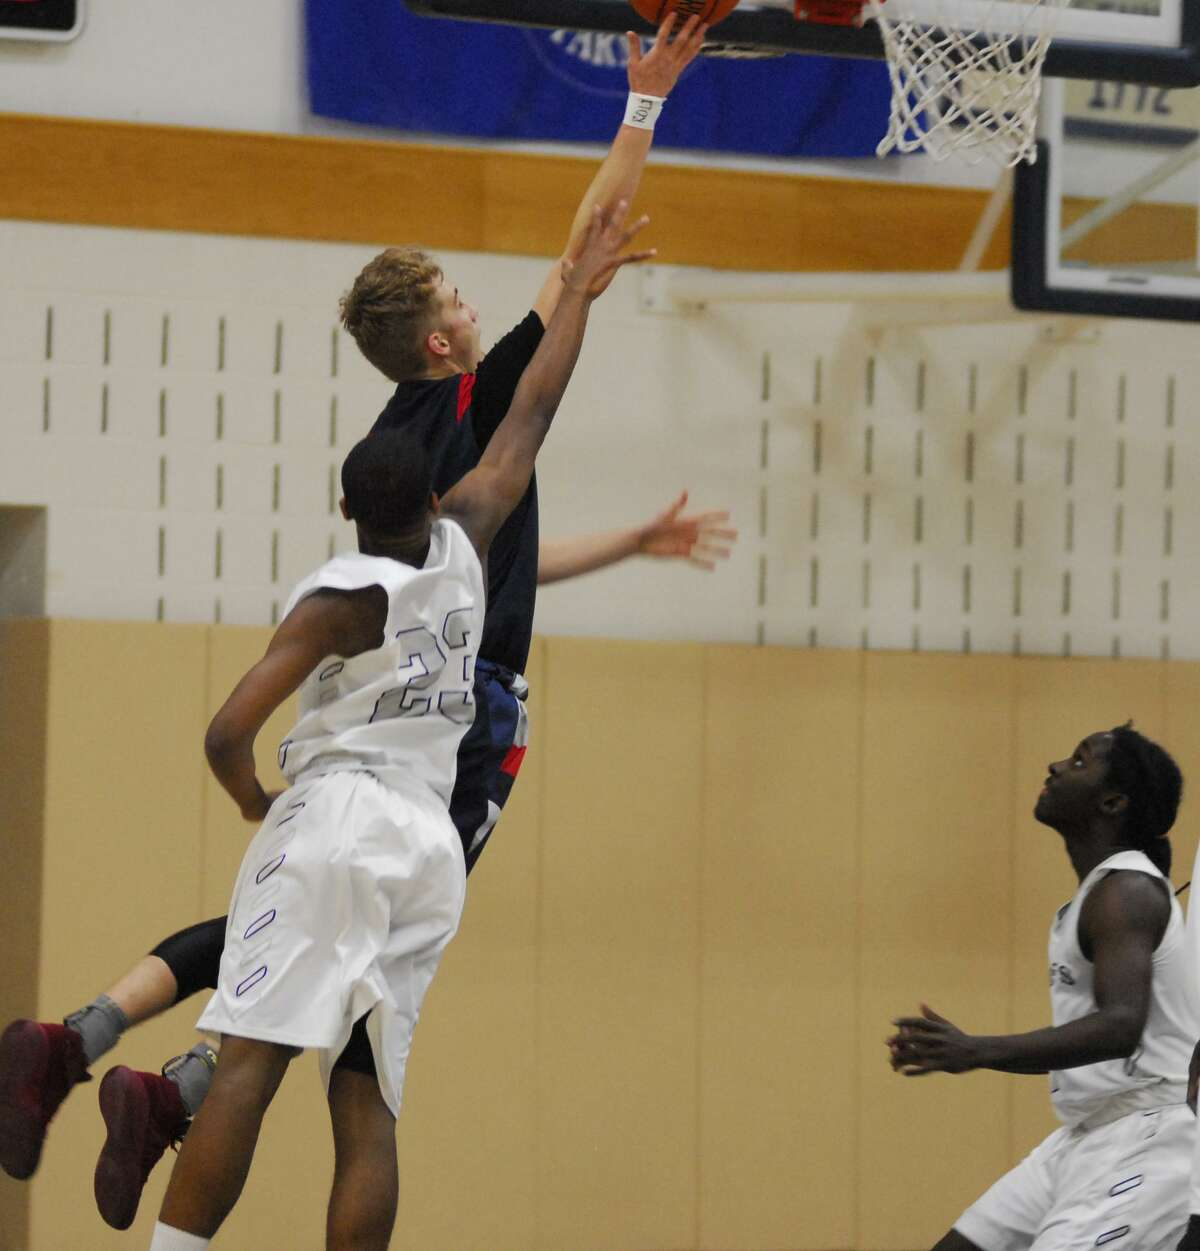 GFA's Cole Prowitt-Smith goes up for a layup during Wednesday's game against Masters.